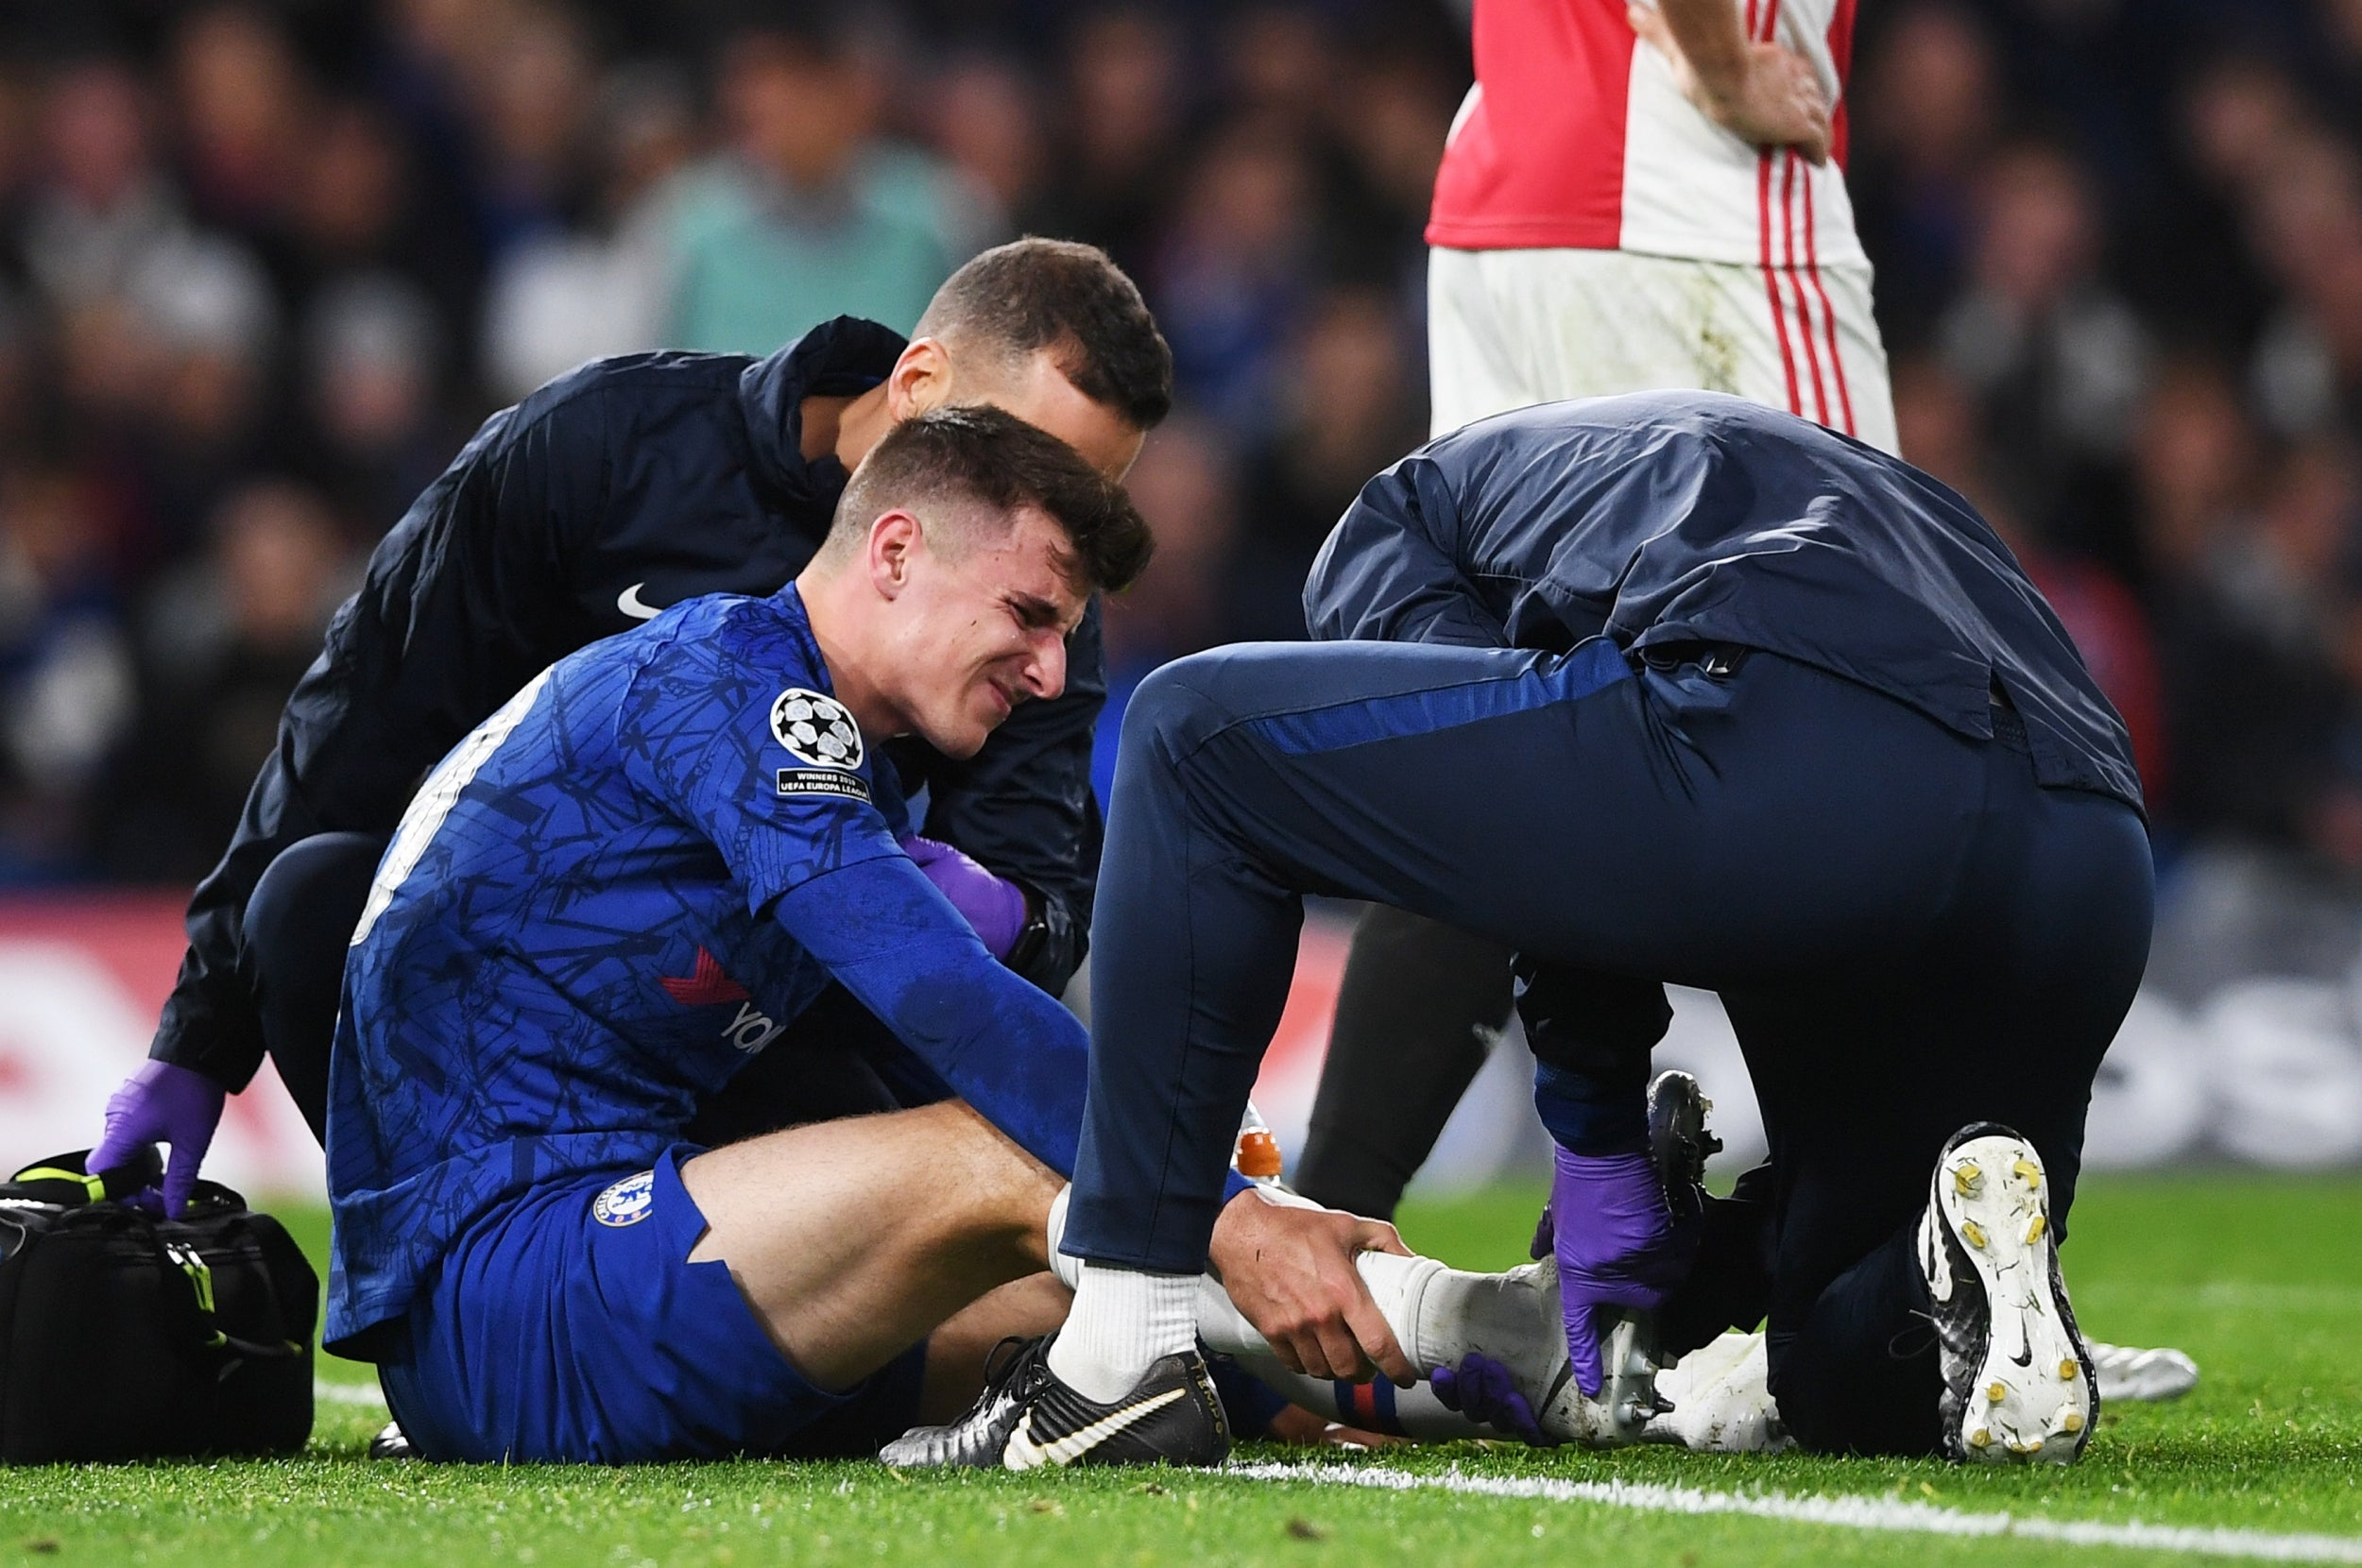 Mason Mount: Latest on Chelsea star's injured ankle | The ...